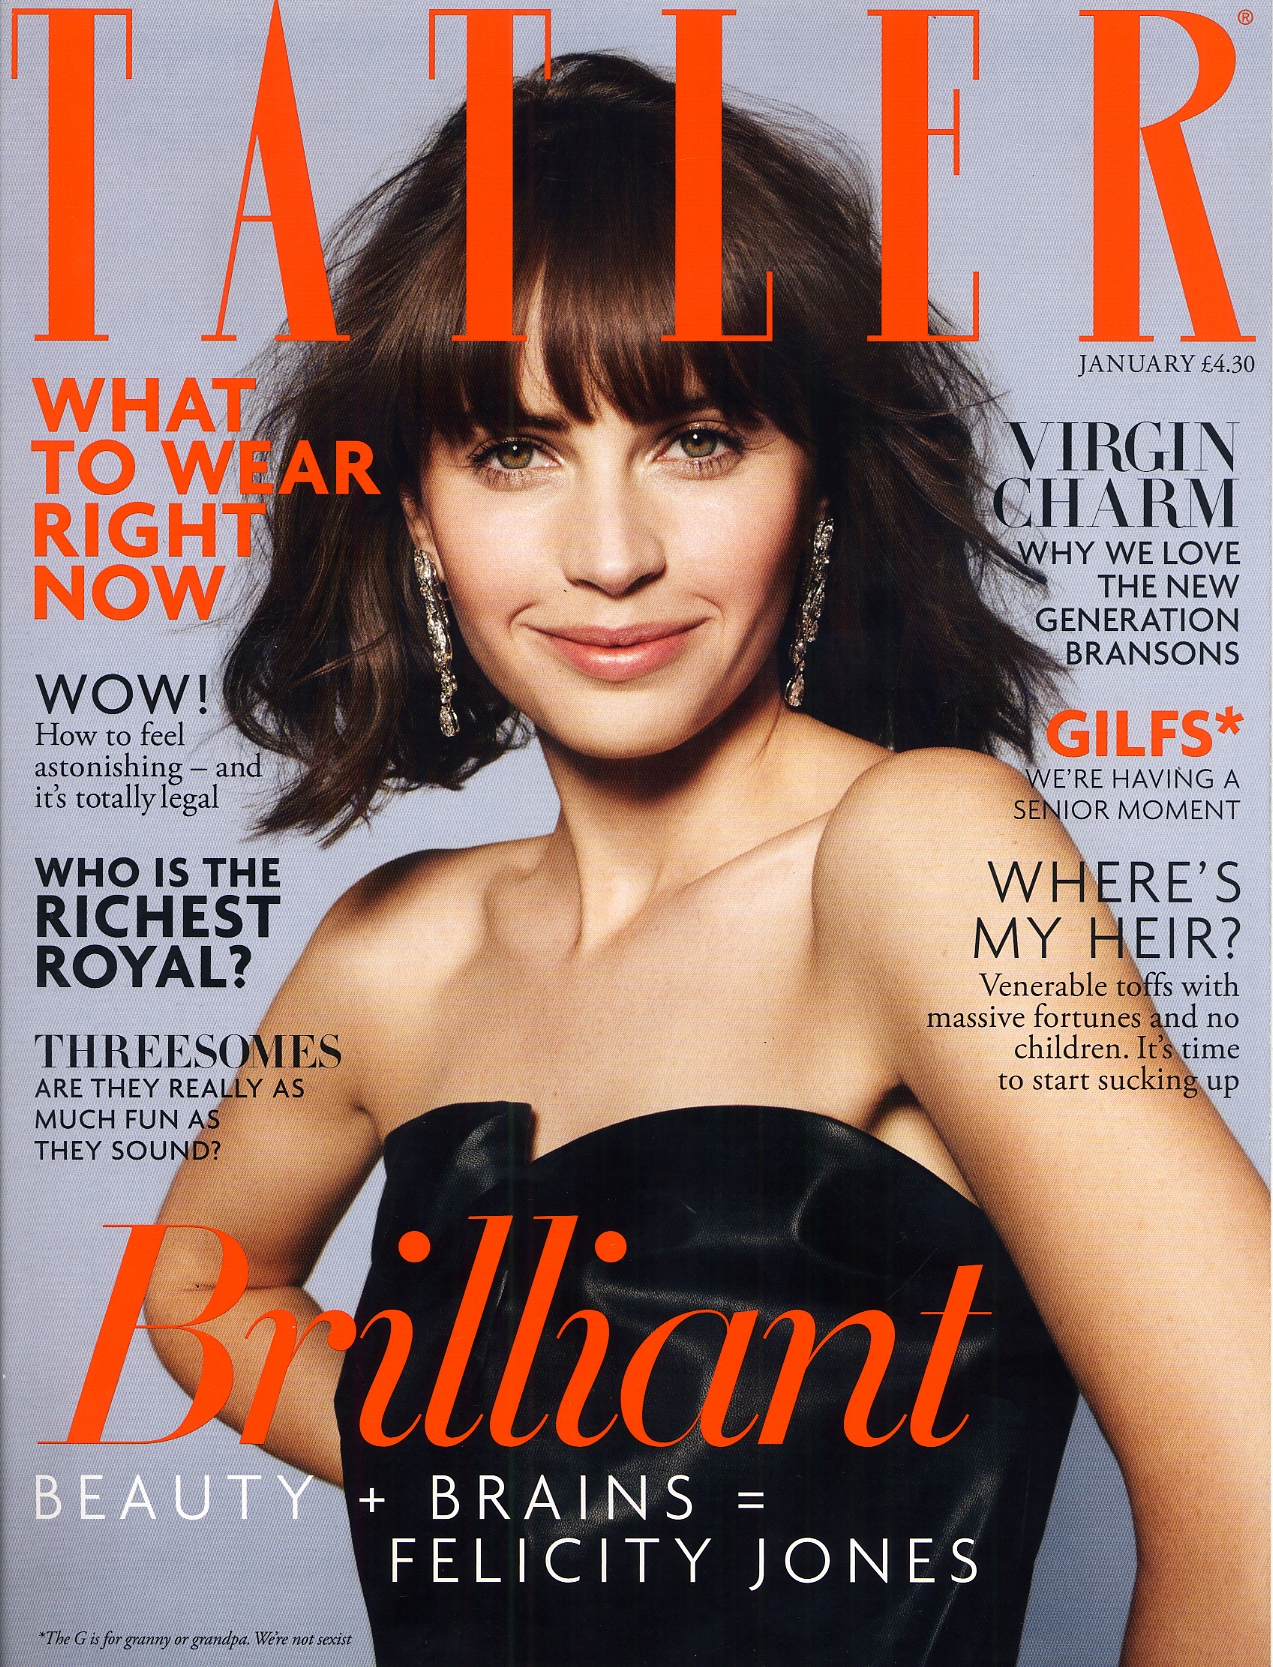 tatler-simply-naturale-jan